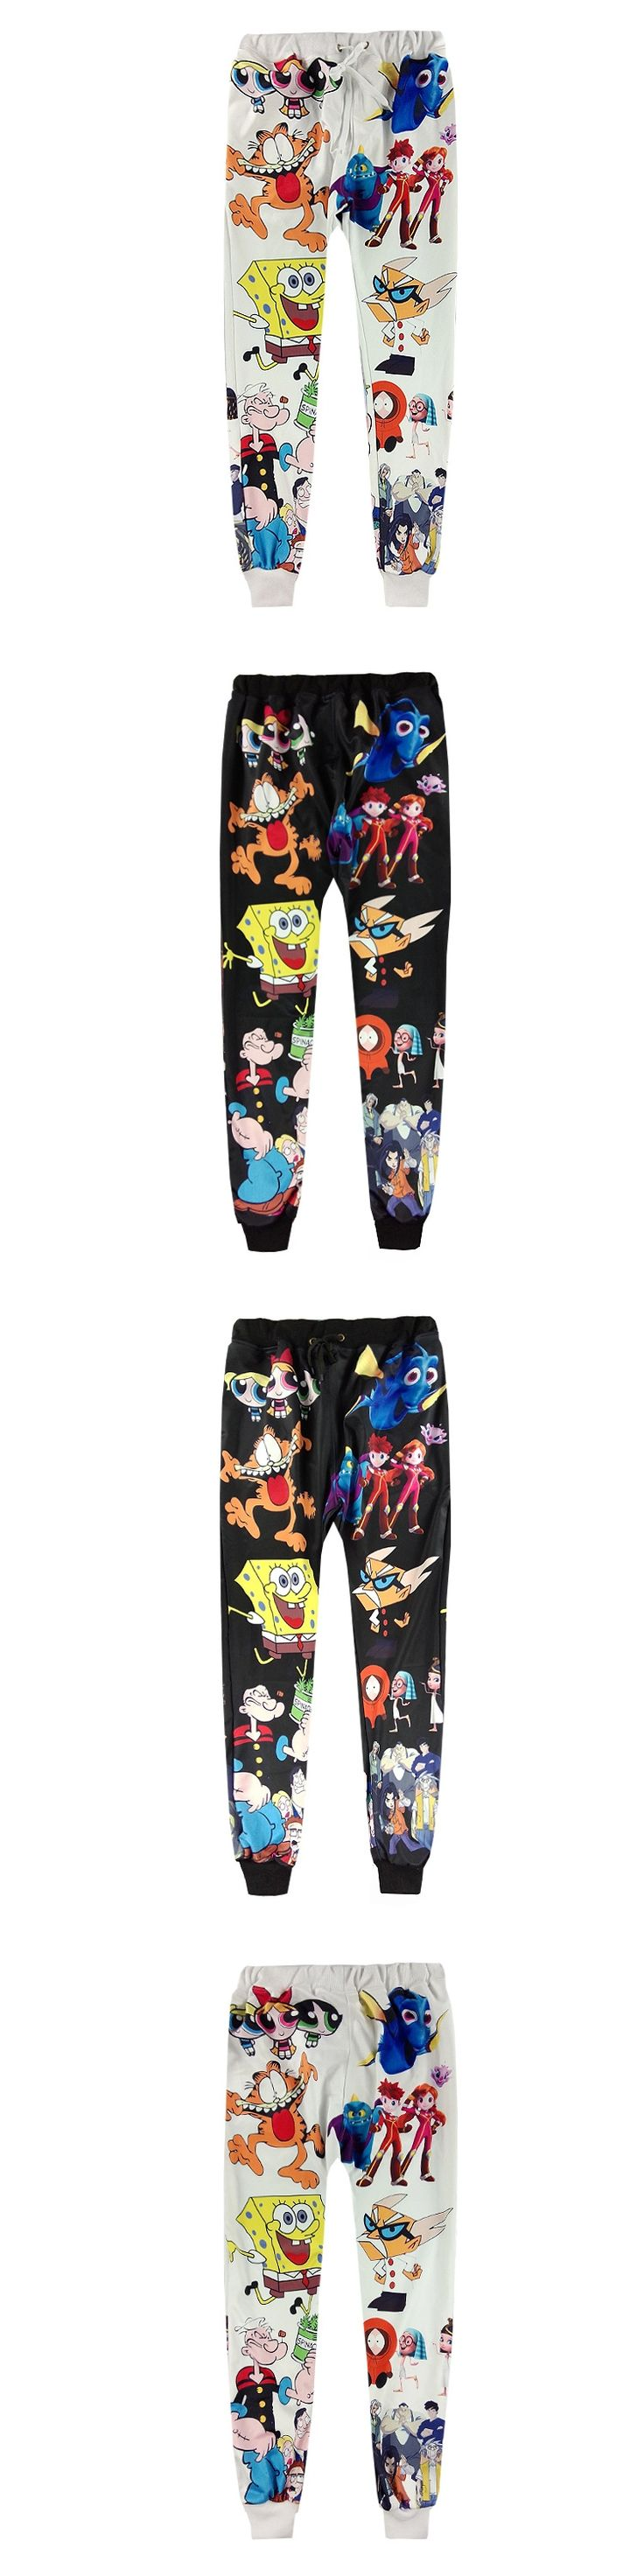 Fashion Funny Sweatpants 3D Print Emoji Face Coffee Cat Graphic Jogger Pants Men/Women Casual Harem Pants Comfortable Trousers